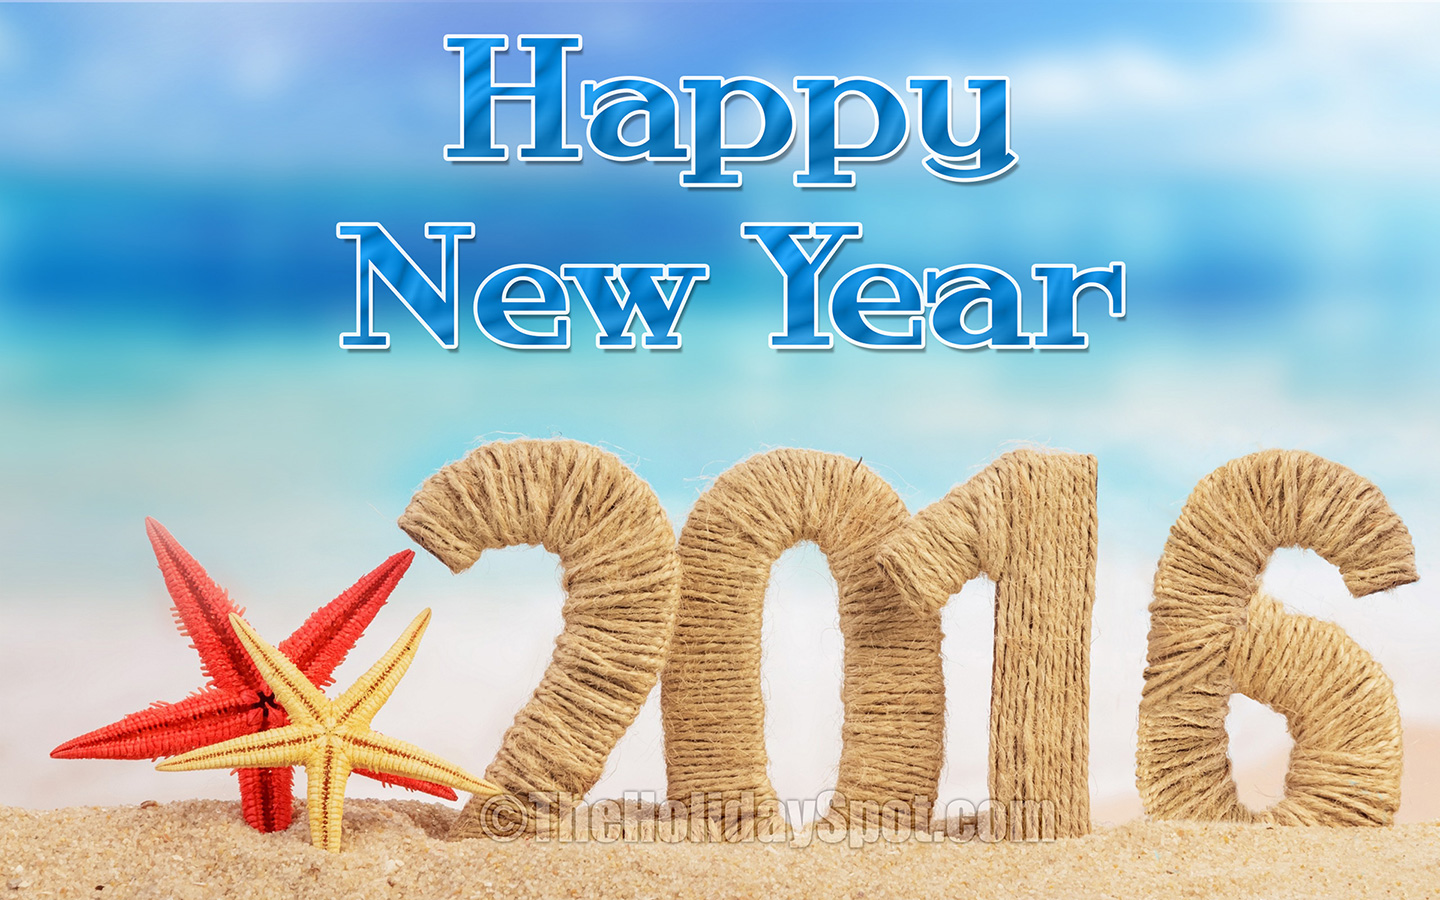 New Year 2016 Wallpapers for Desktop Widescreen Mobile High 1440x900